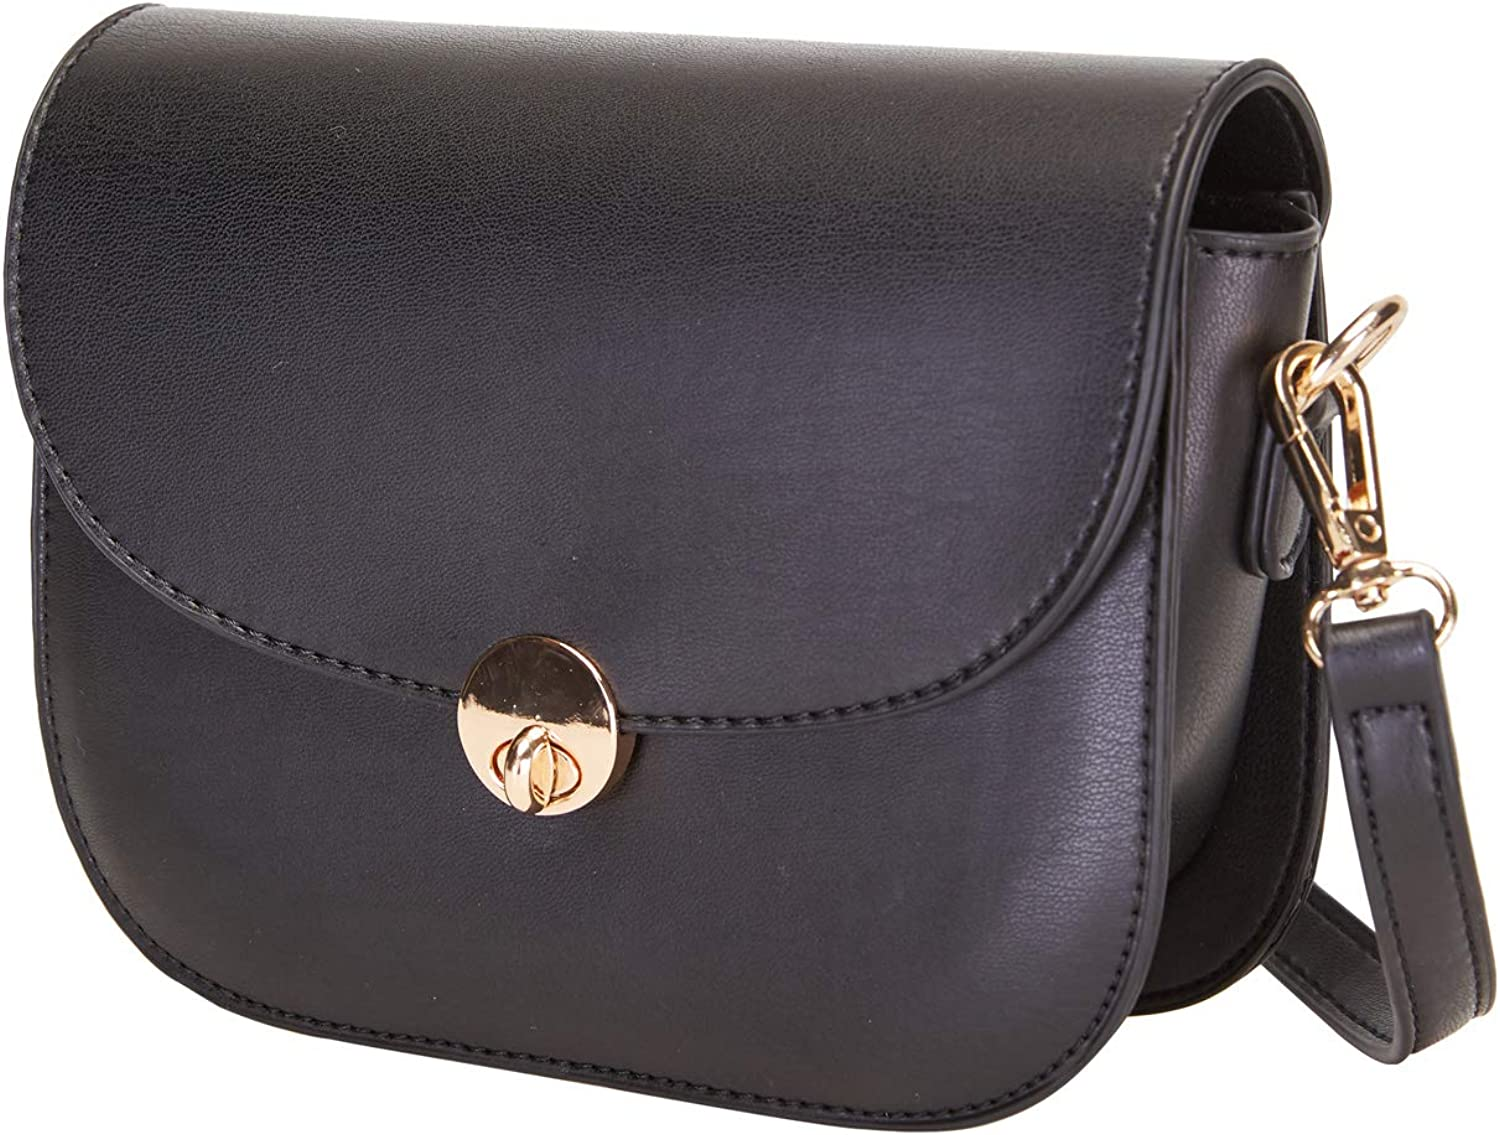 Noize Lacy Crossbody Bag Vegan Cruelty Free Faux Leather